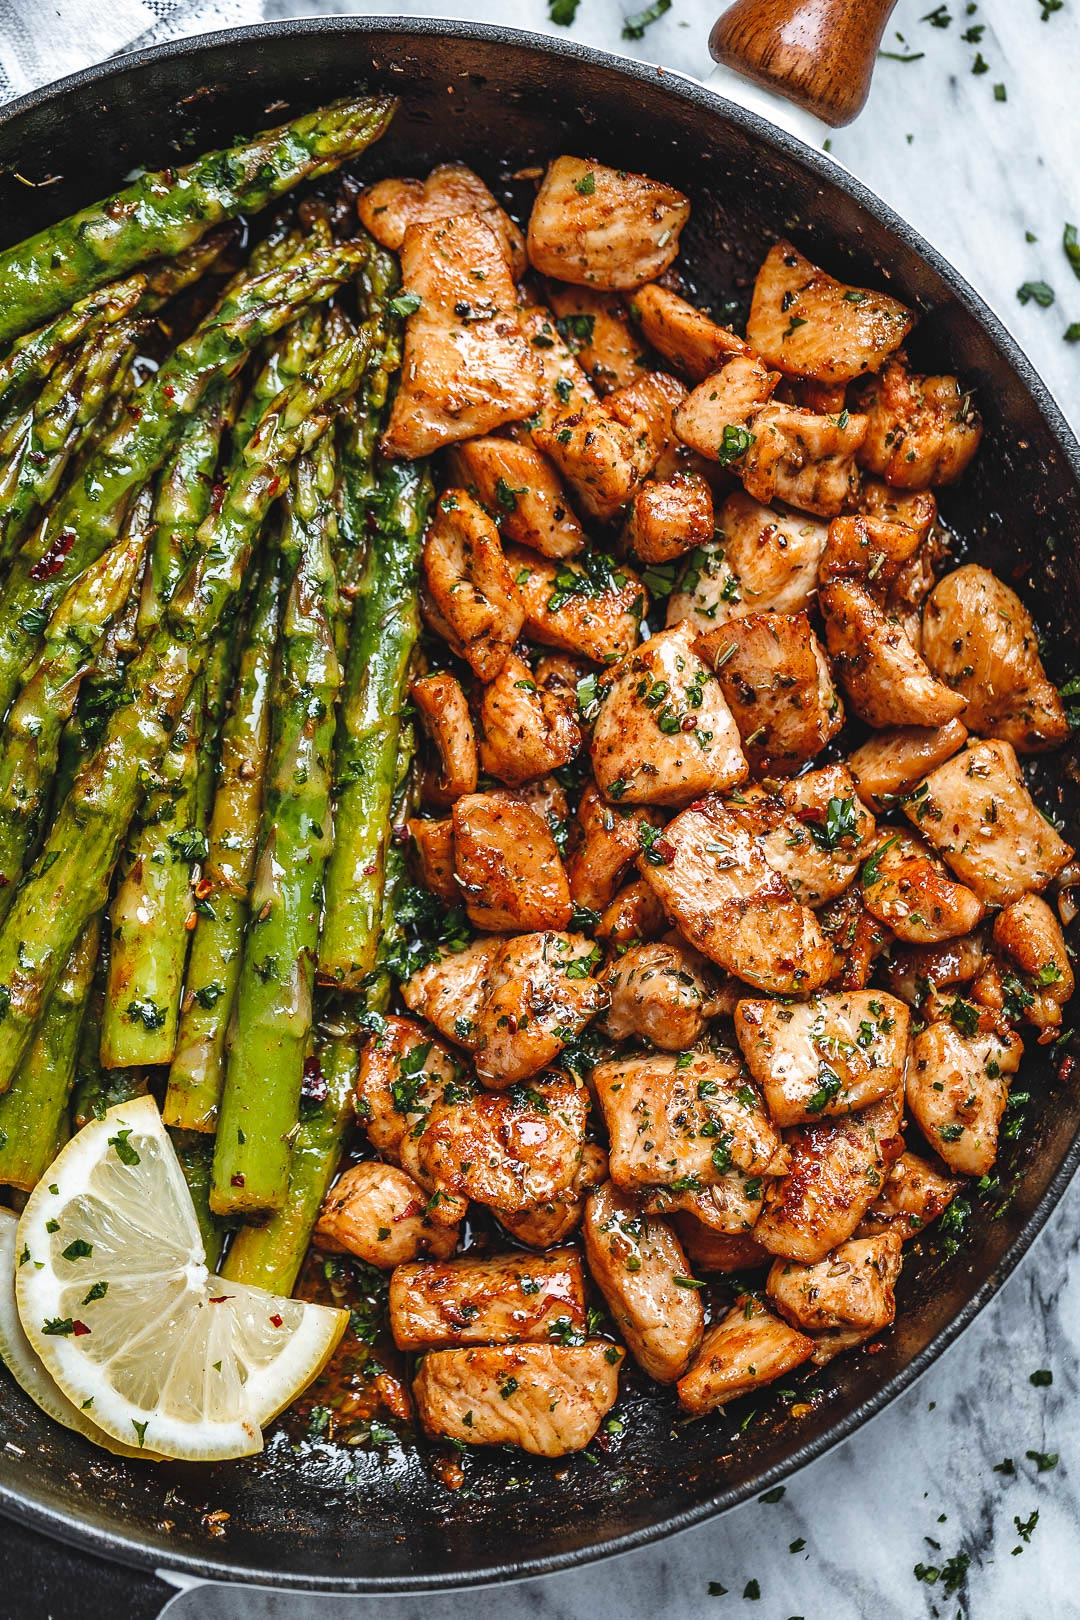 Garlic Butter Chicken Bites with Lemon Asparagus images